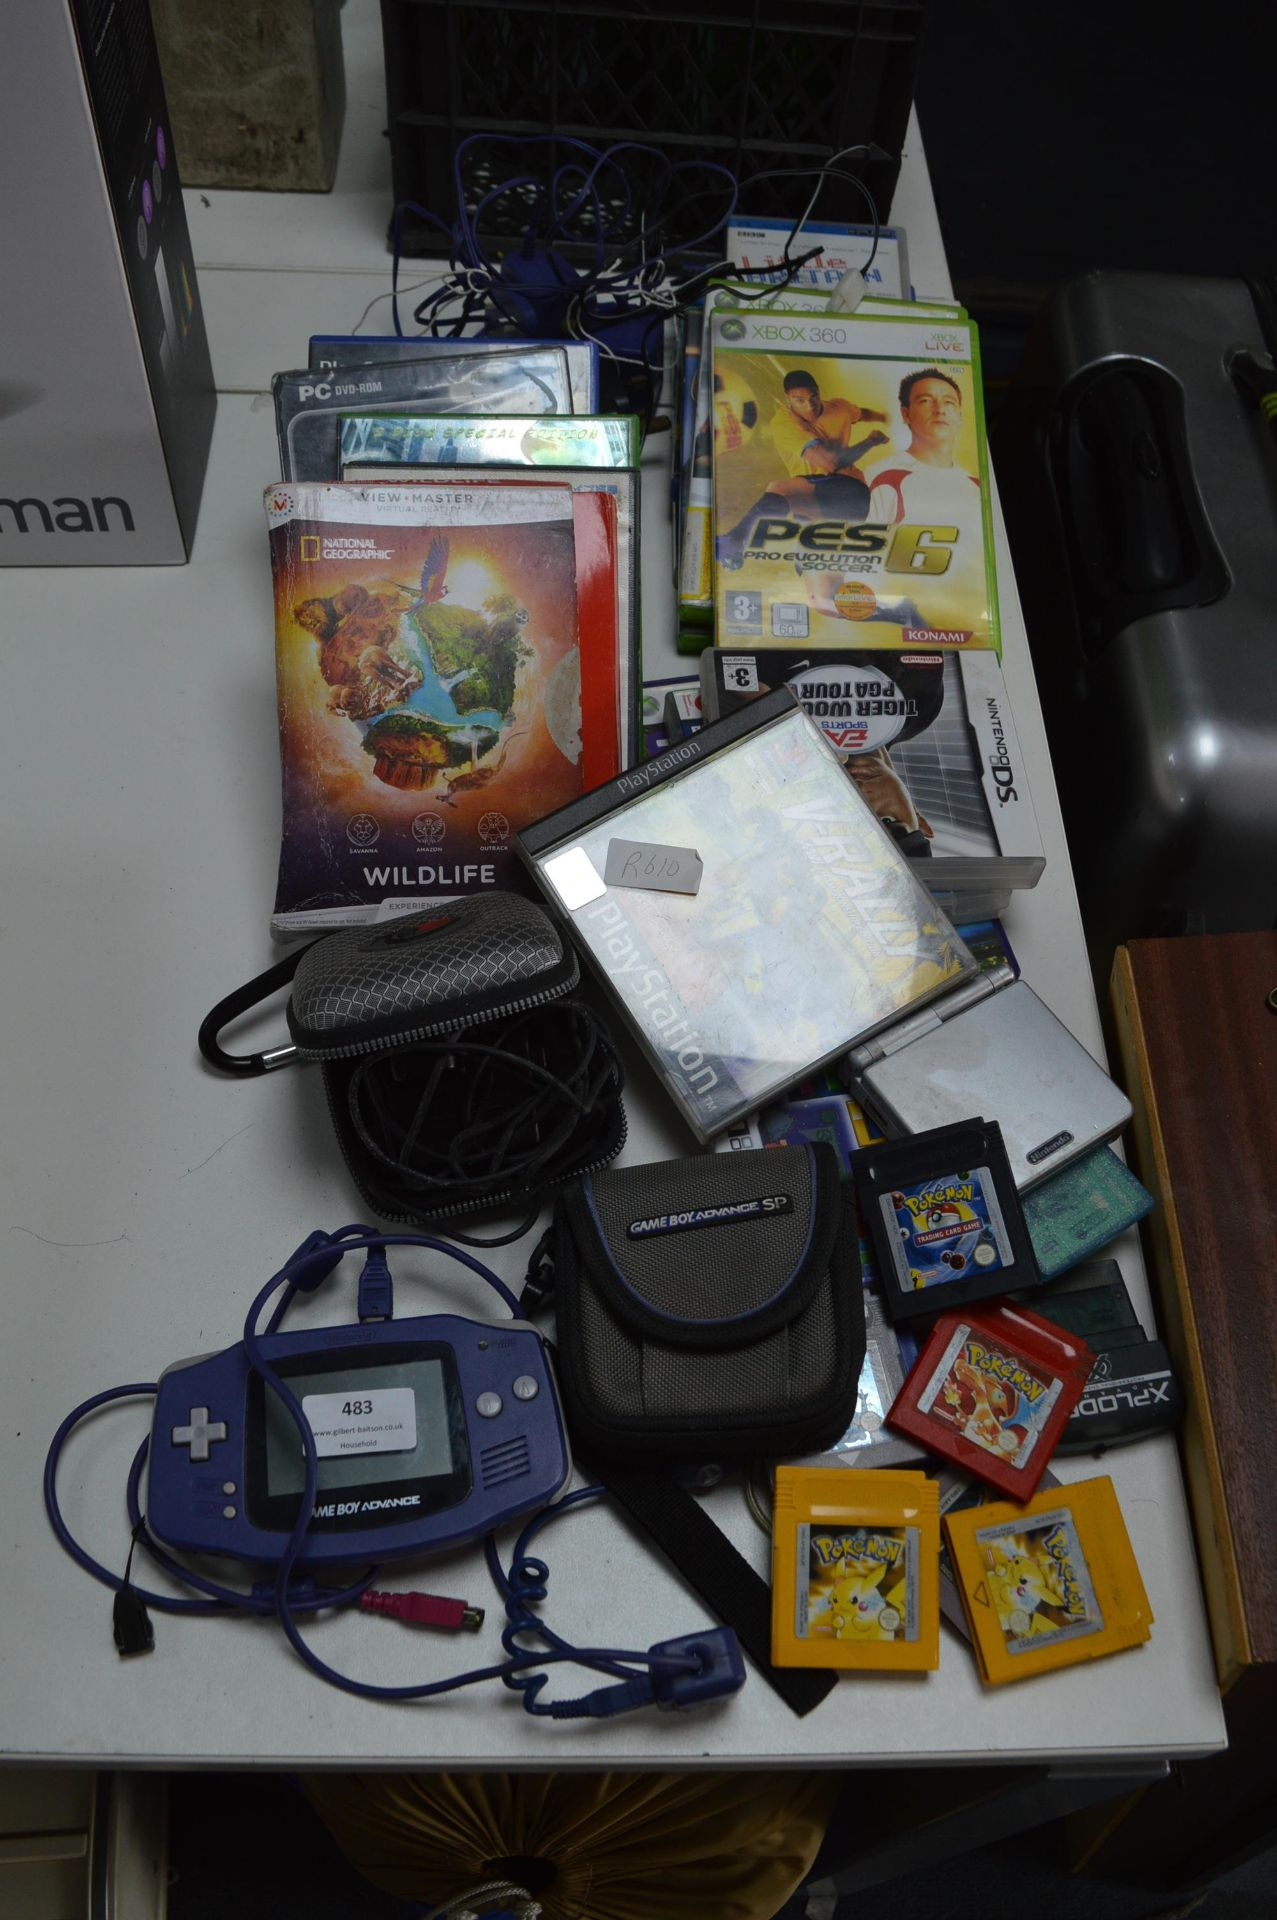 Lot 483 - Game Boy and an Assortment of Games